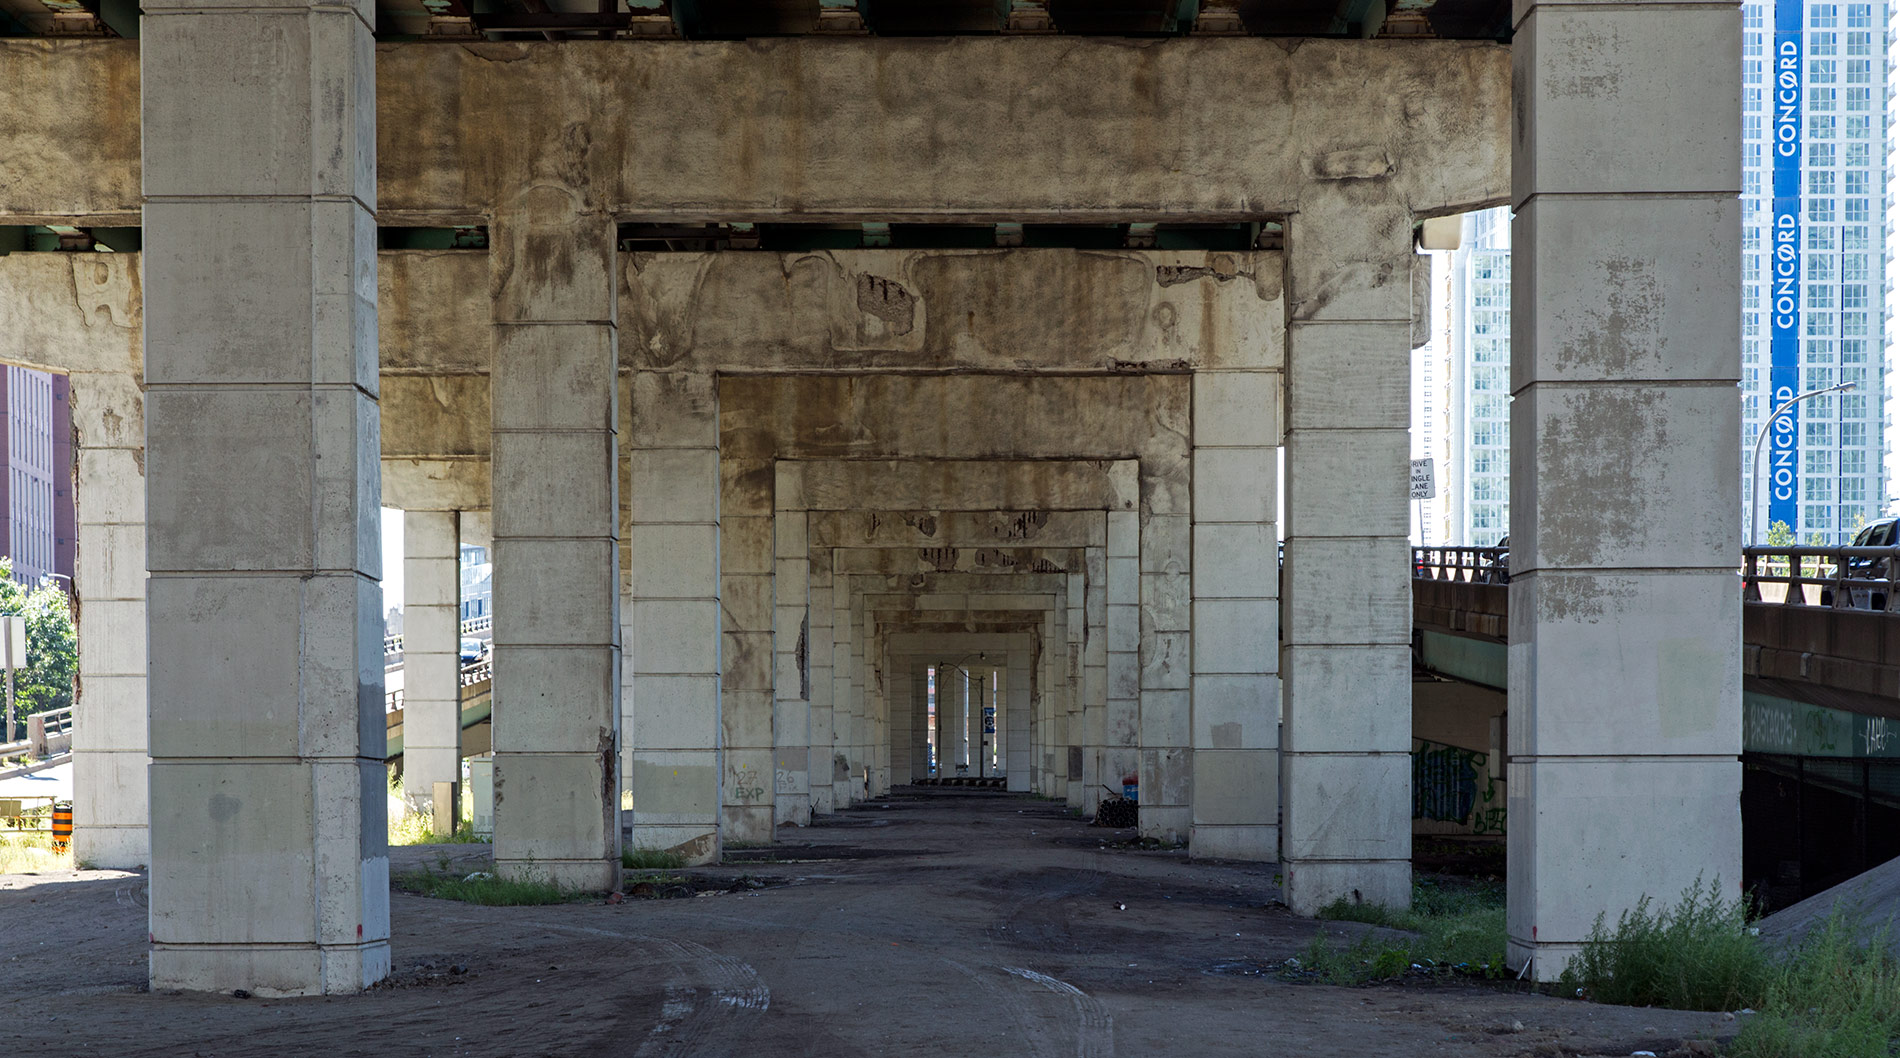 20140911. Underneath the Gardiner Expressway grime, Toronto.